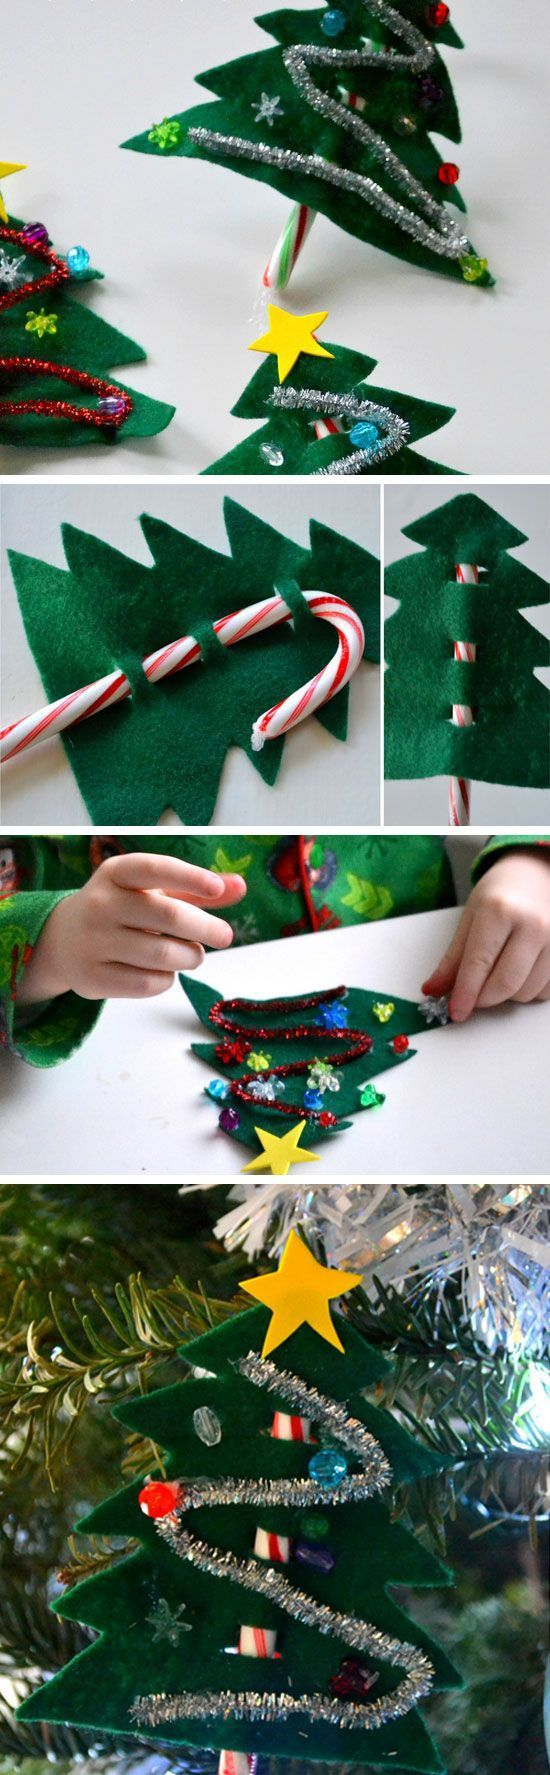 Candy Cane Christmas Trees | 30+ DIY Christmas Crafts for Kids to Make